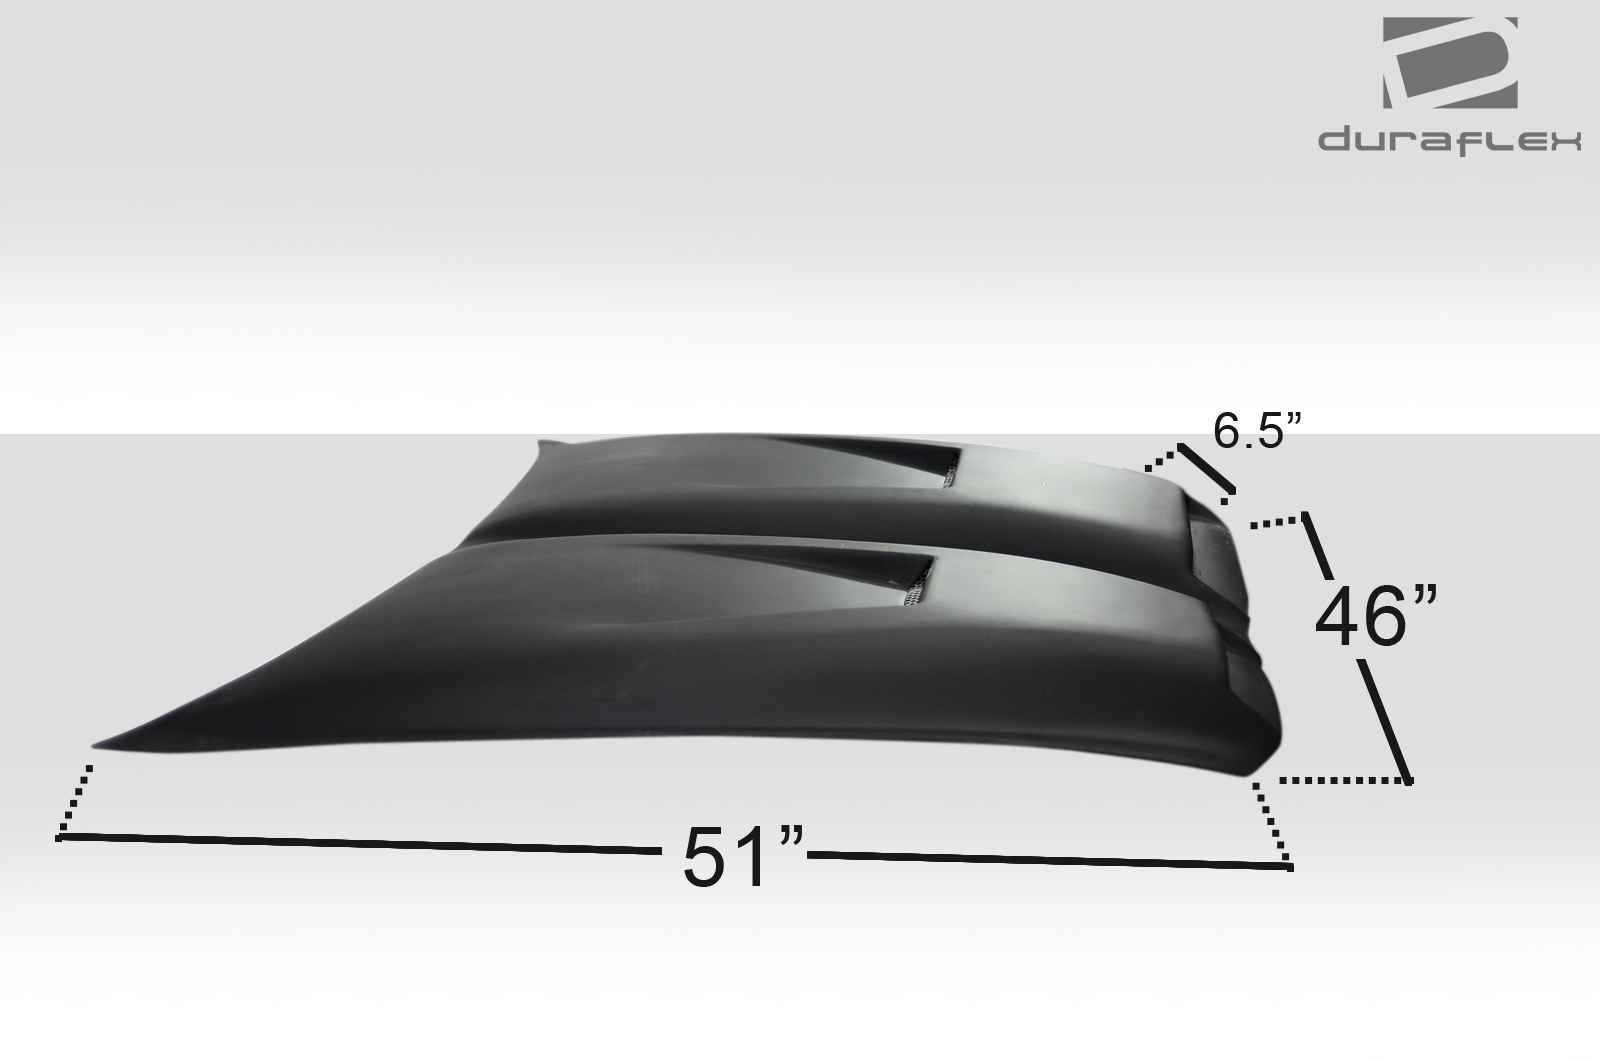 1 Piece Compatible With//Replacement For Duraflex ED-LPF-946 \Universal Scoop Compatible With//Replacement For